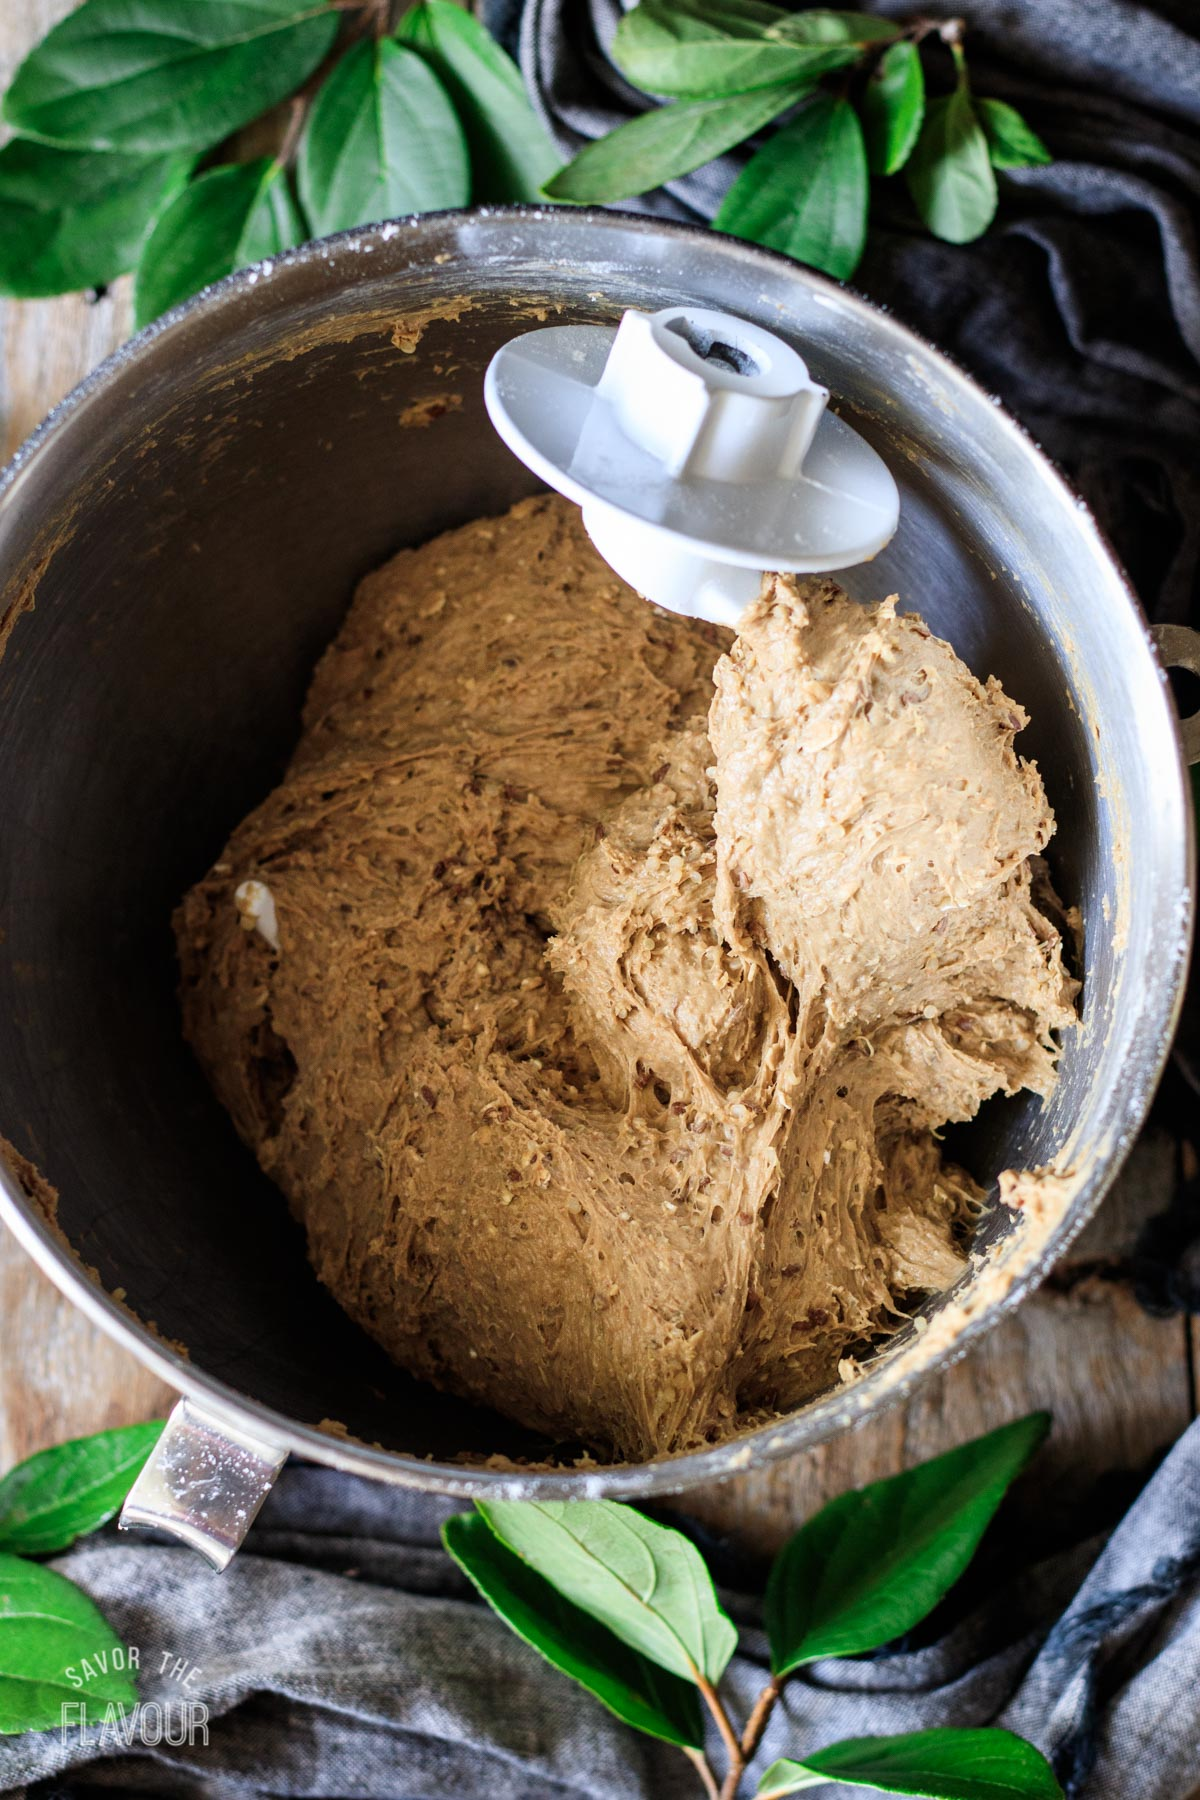 kneaded bread dough in a mixing bowl